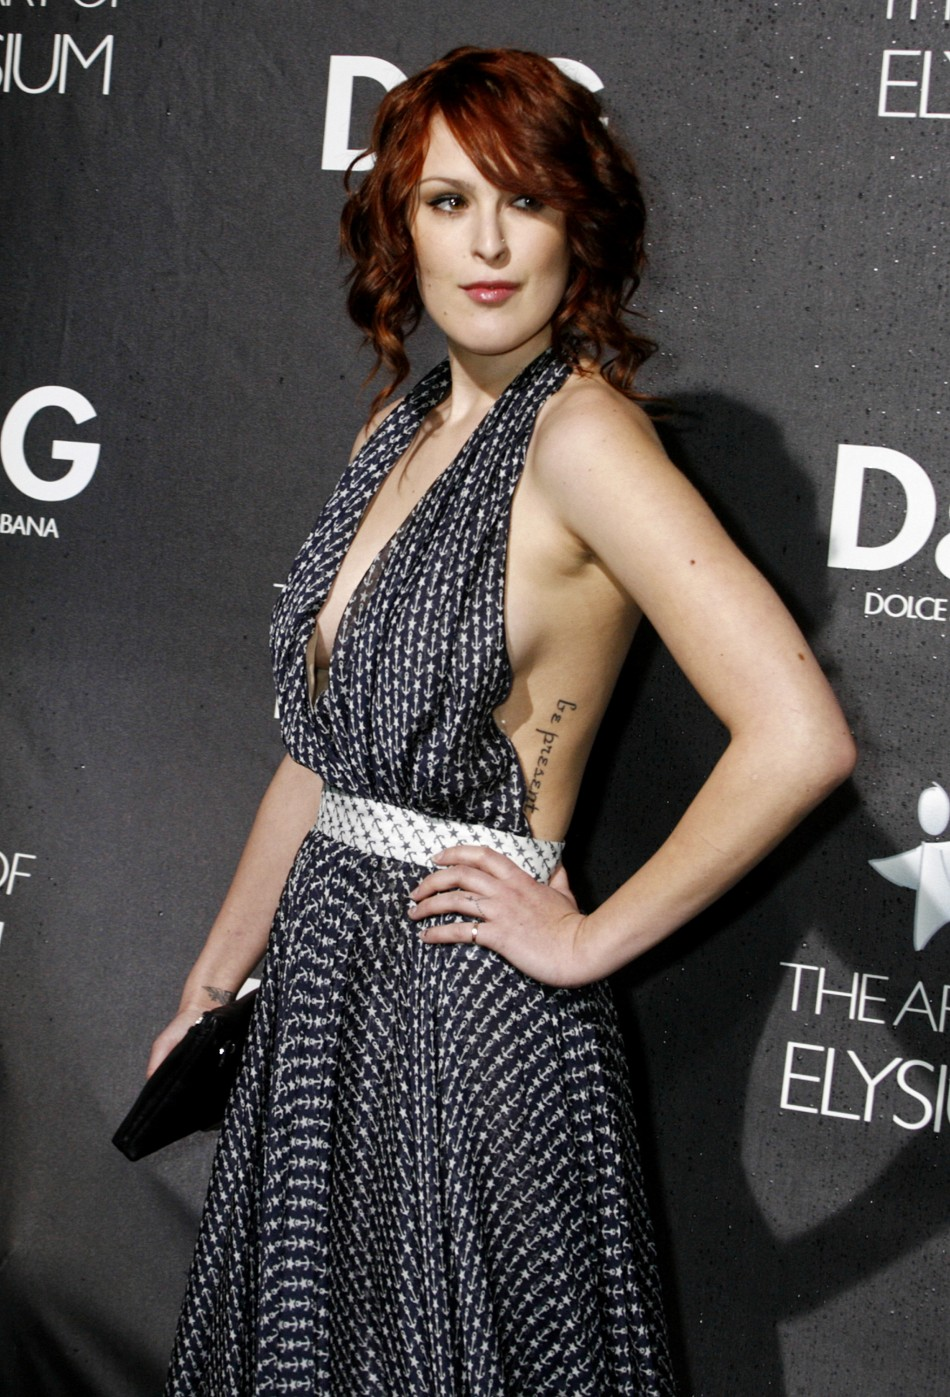 willis dating Rumer willis dating gay roommate the dailymailcom started a rumor that the celebrity spawn was dating tye blue, but the star confirms it's her gay roomie.